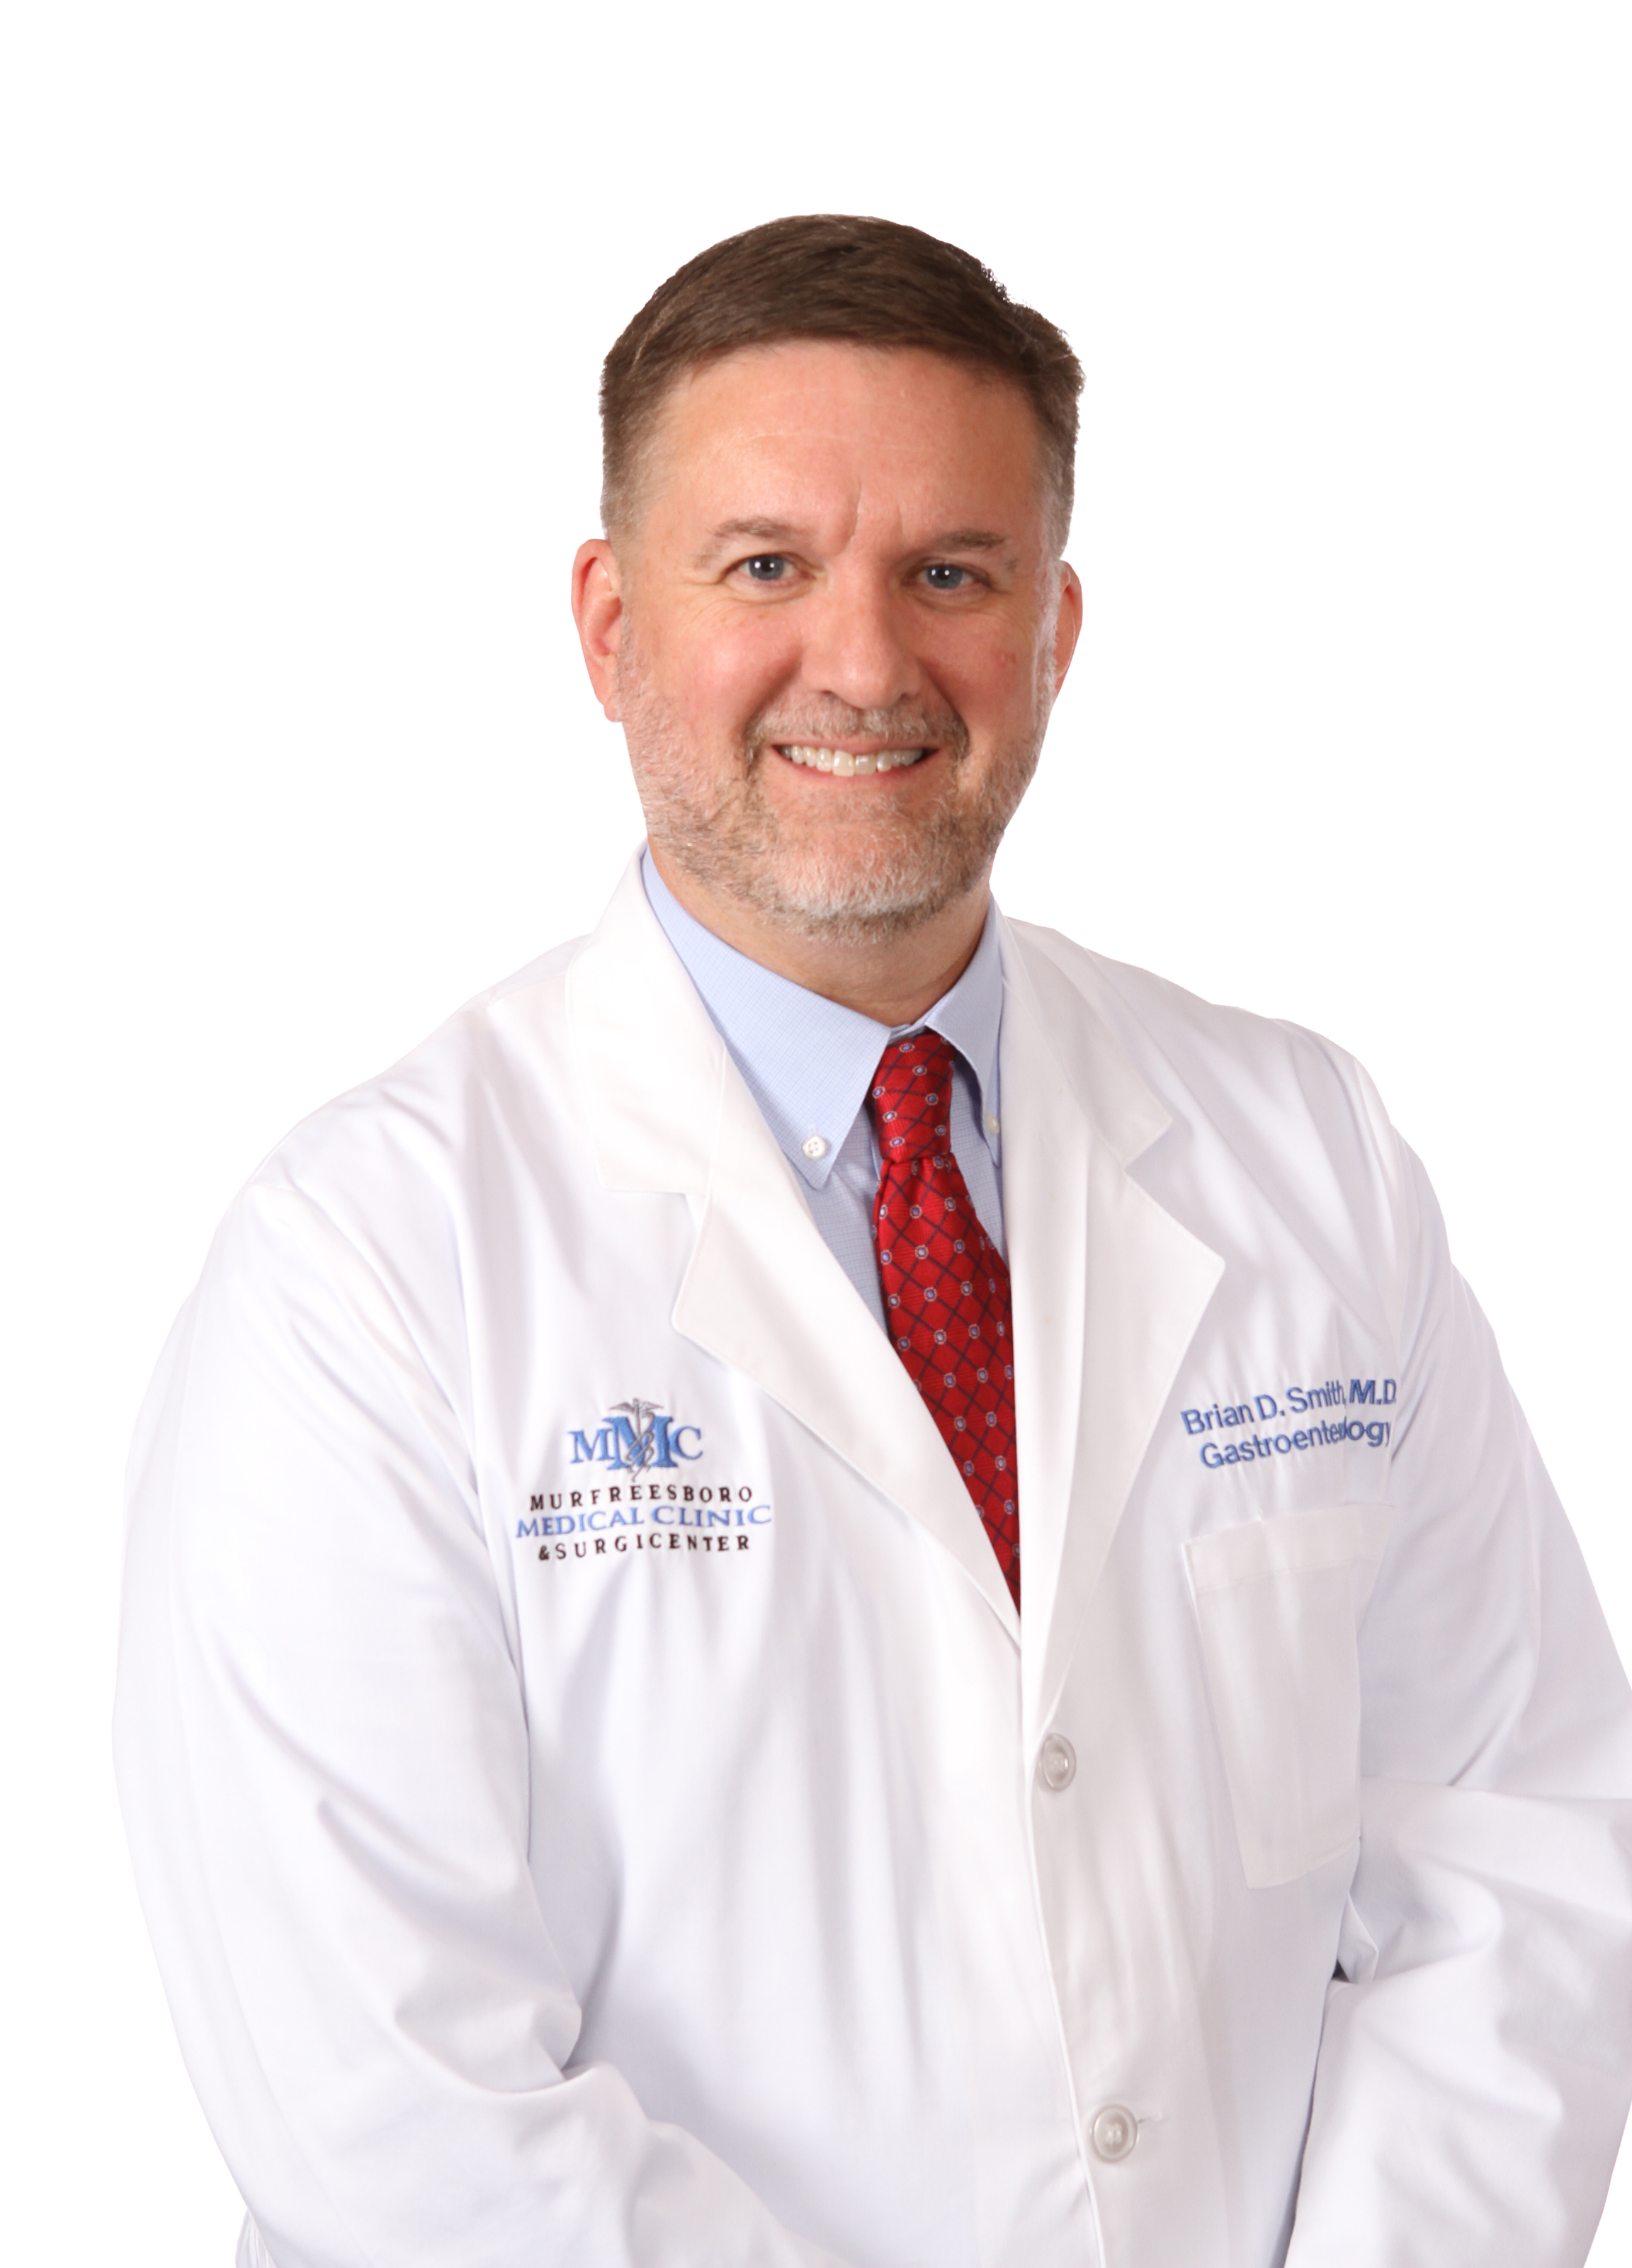 Dr. Brian Smith, M.D. Joins MMC's Gastroenterology Department